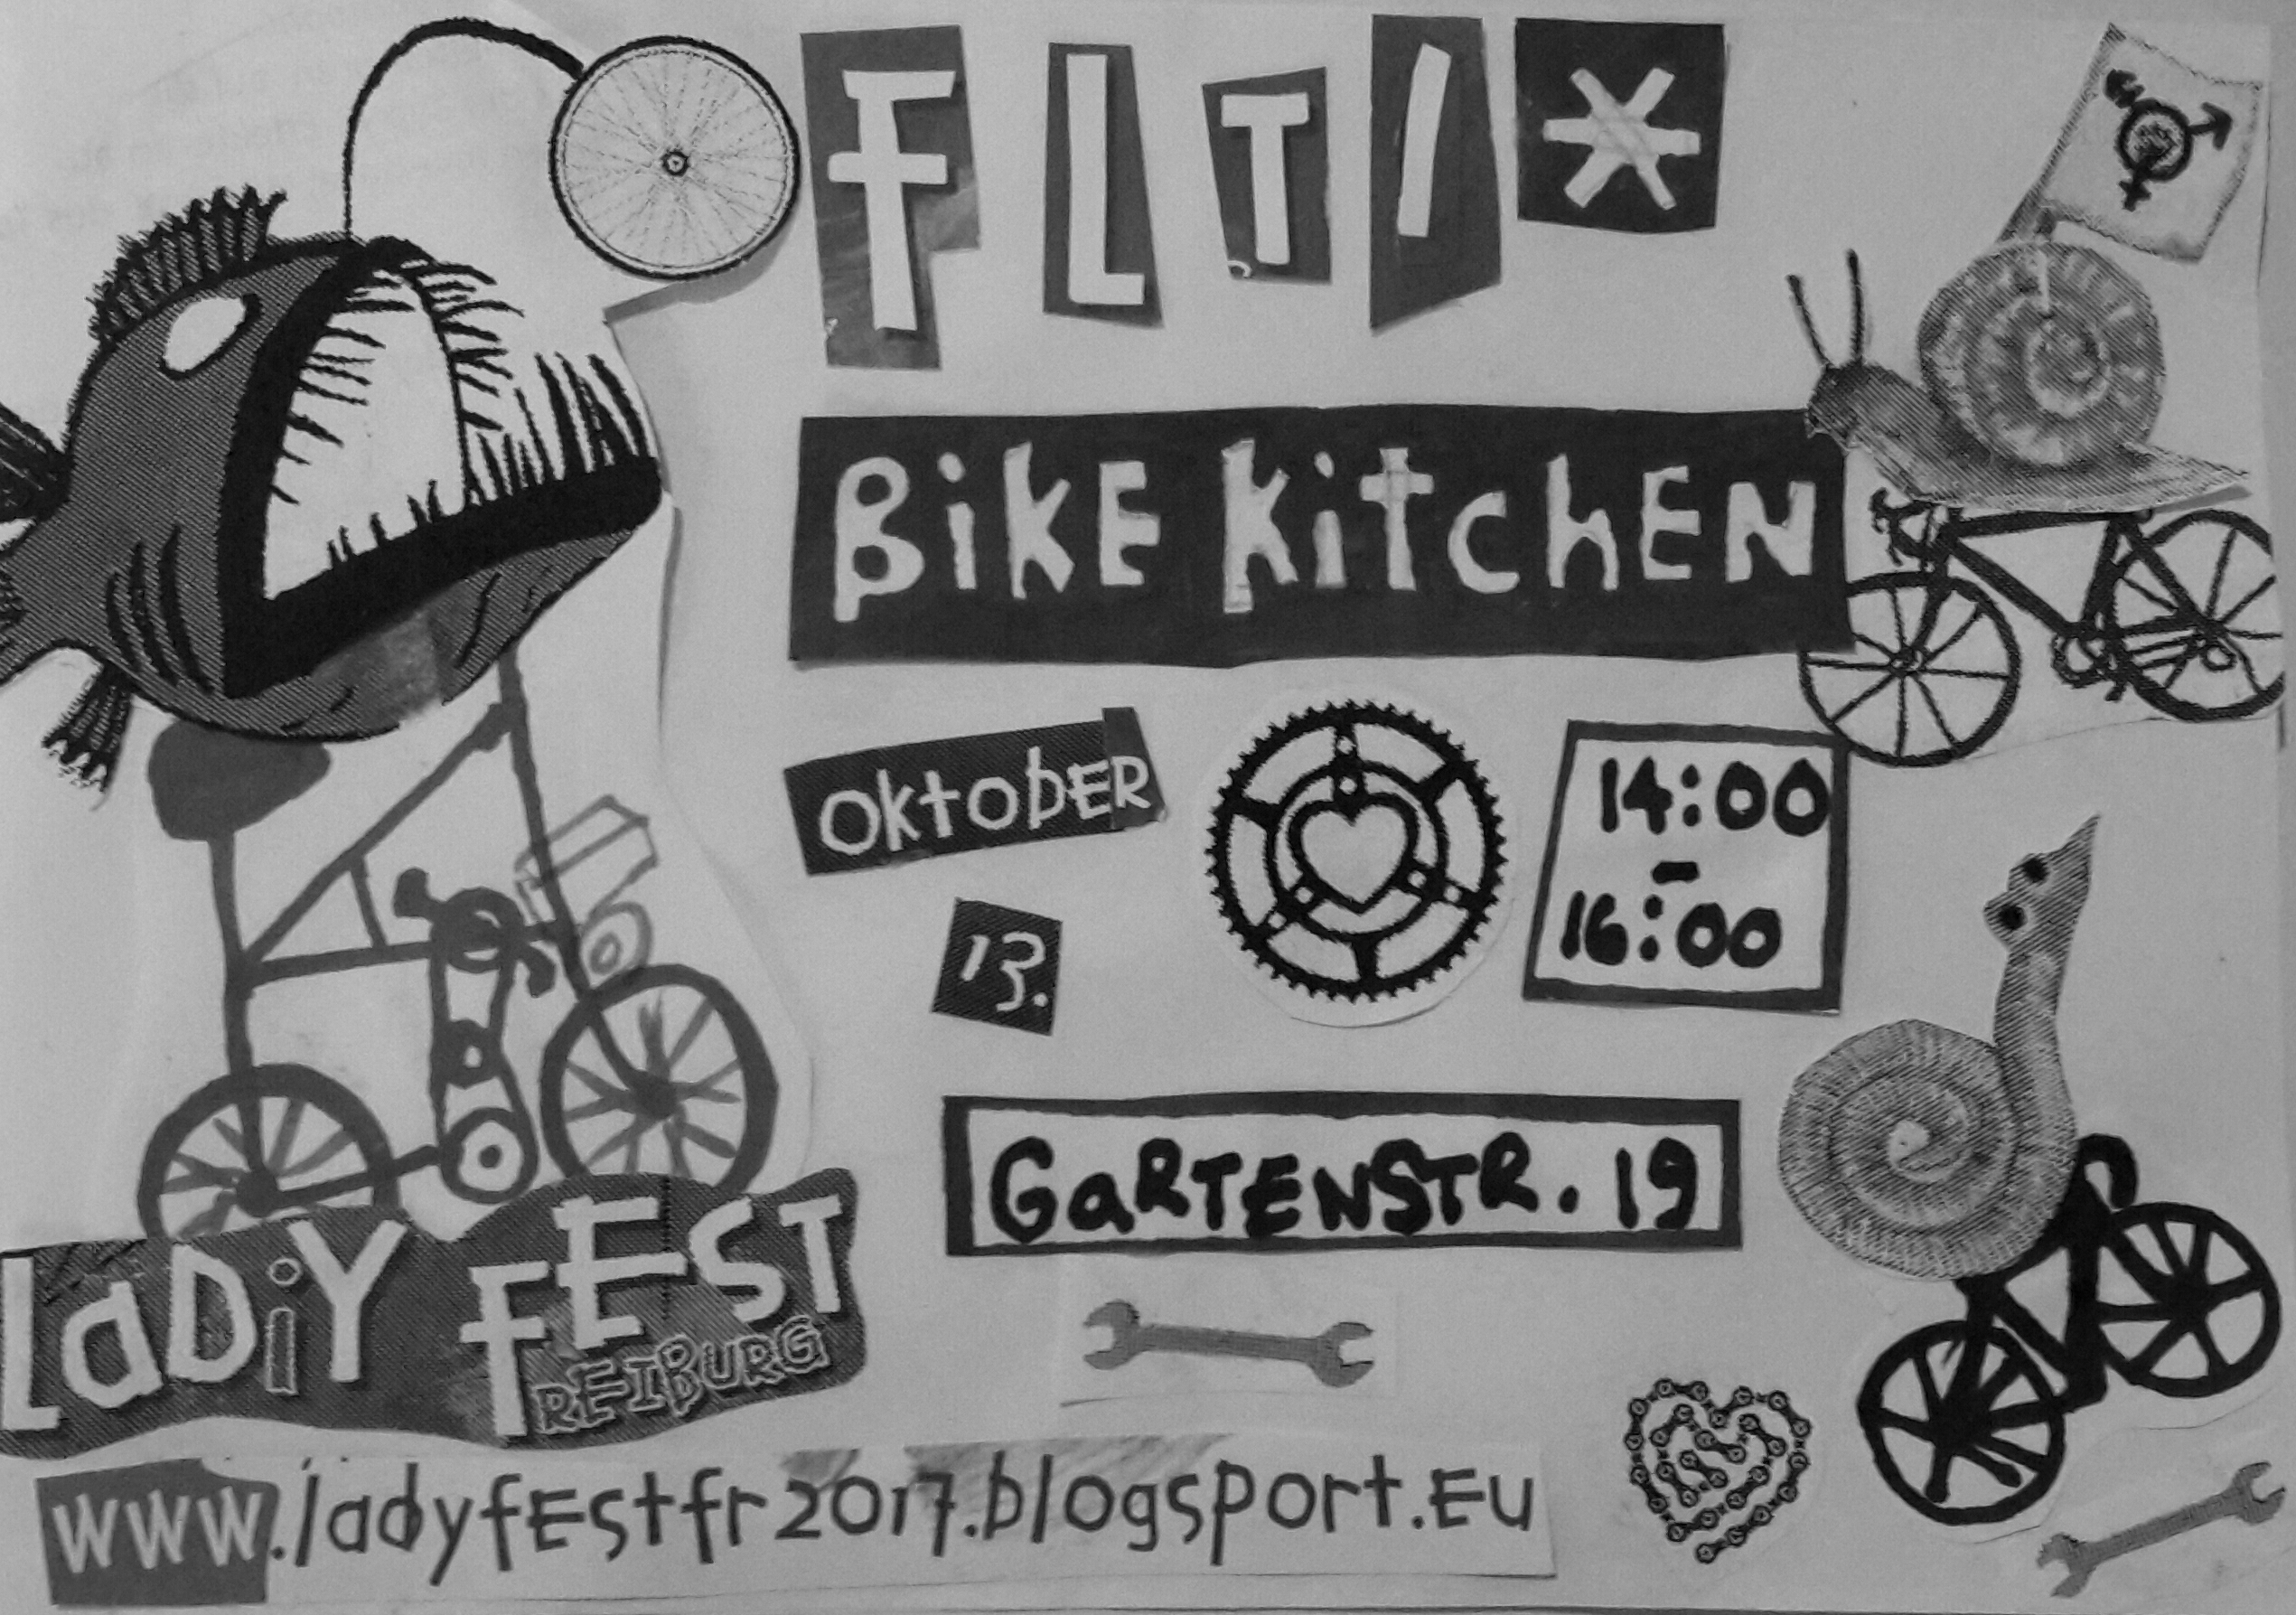 FLTIQ* Bike Kitchen